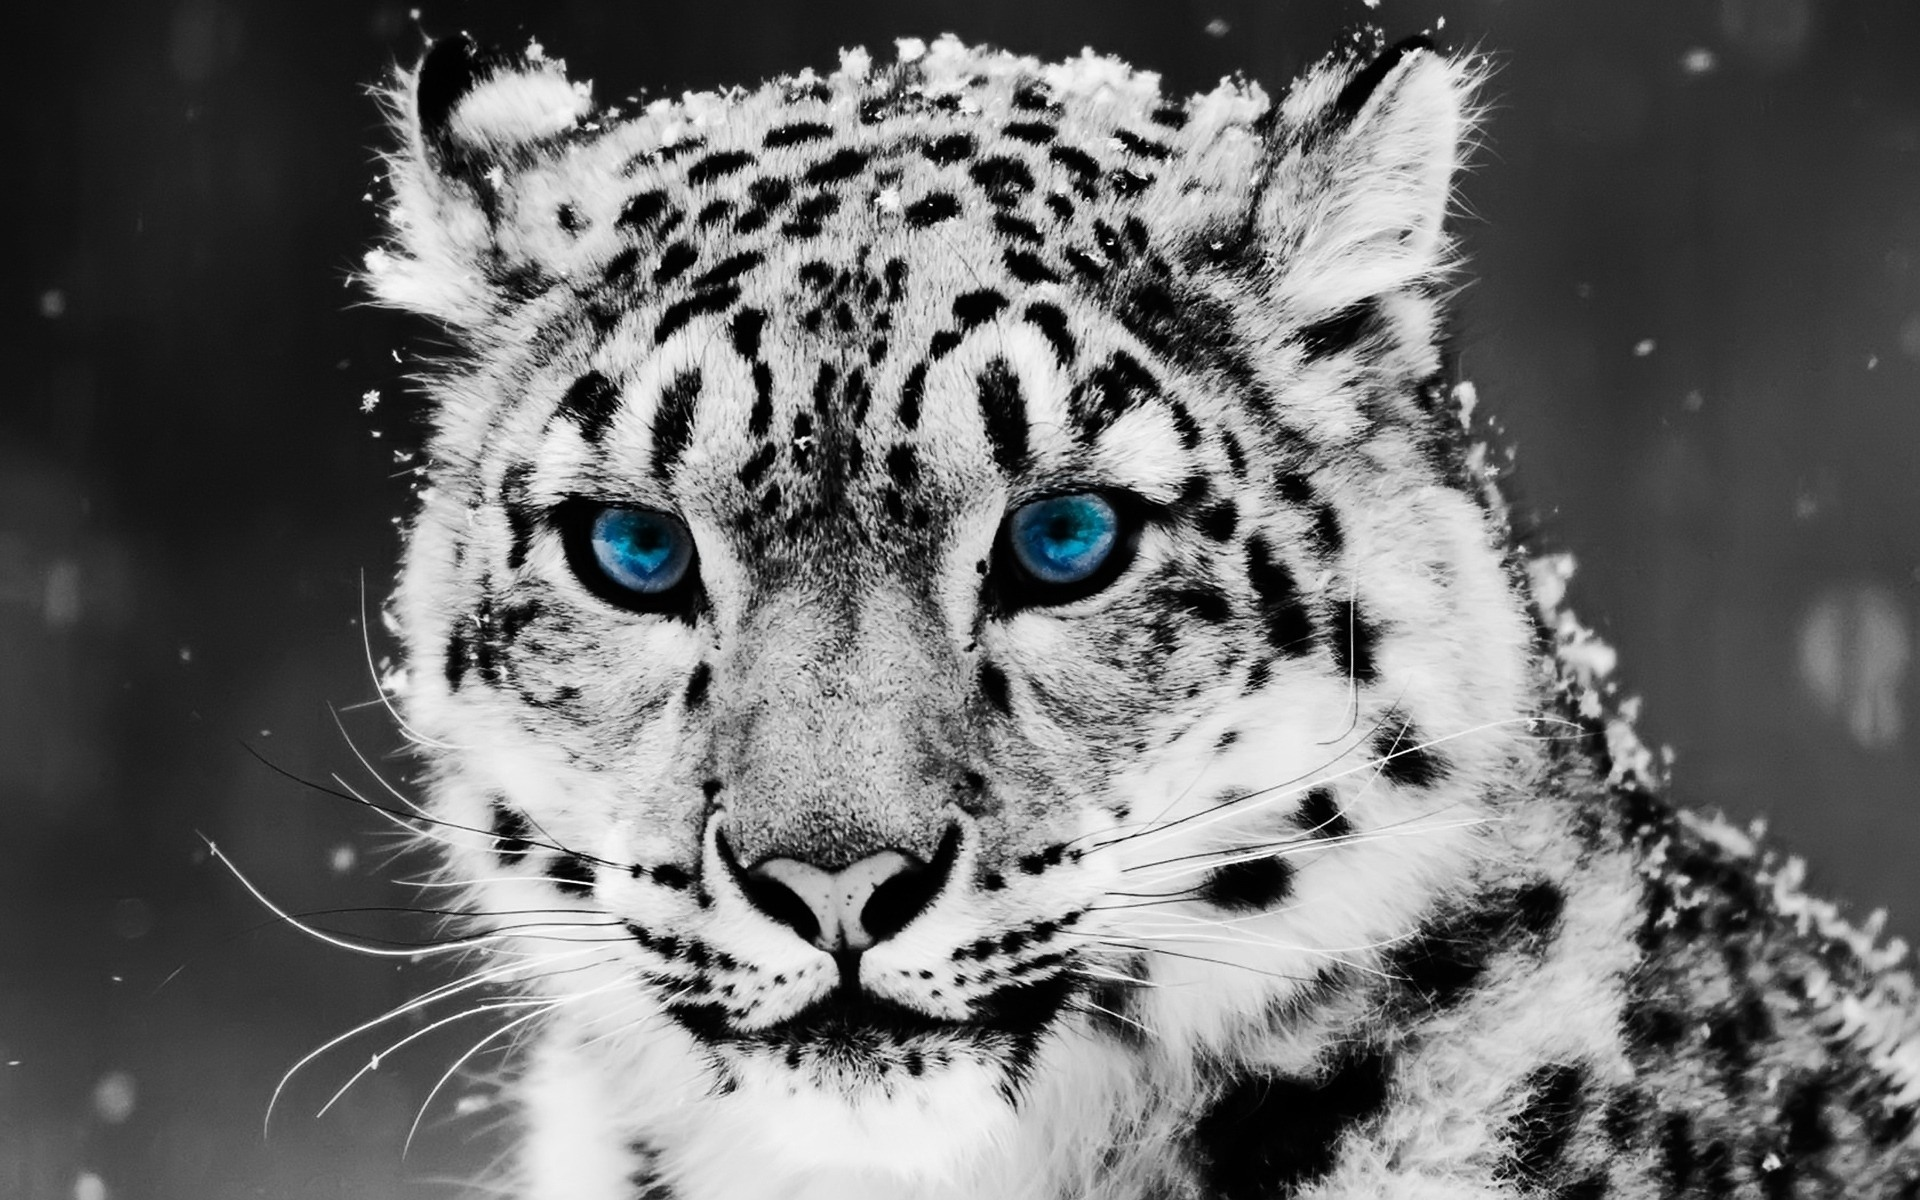 Drawn snow leopard blue eyed Snow Blue with Snow Wallpaper: